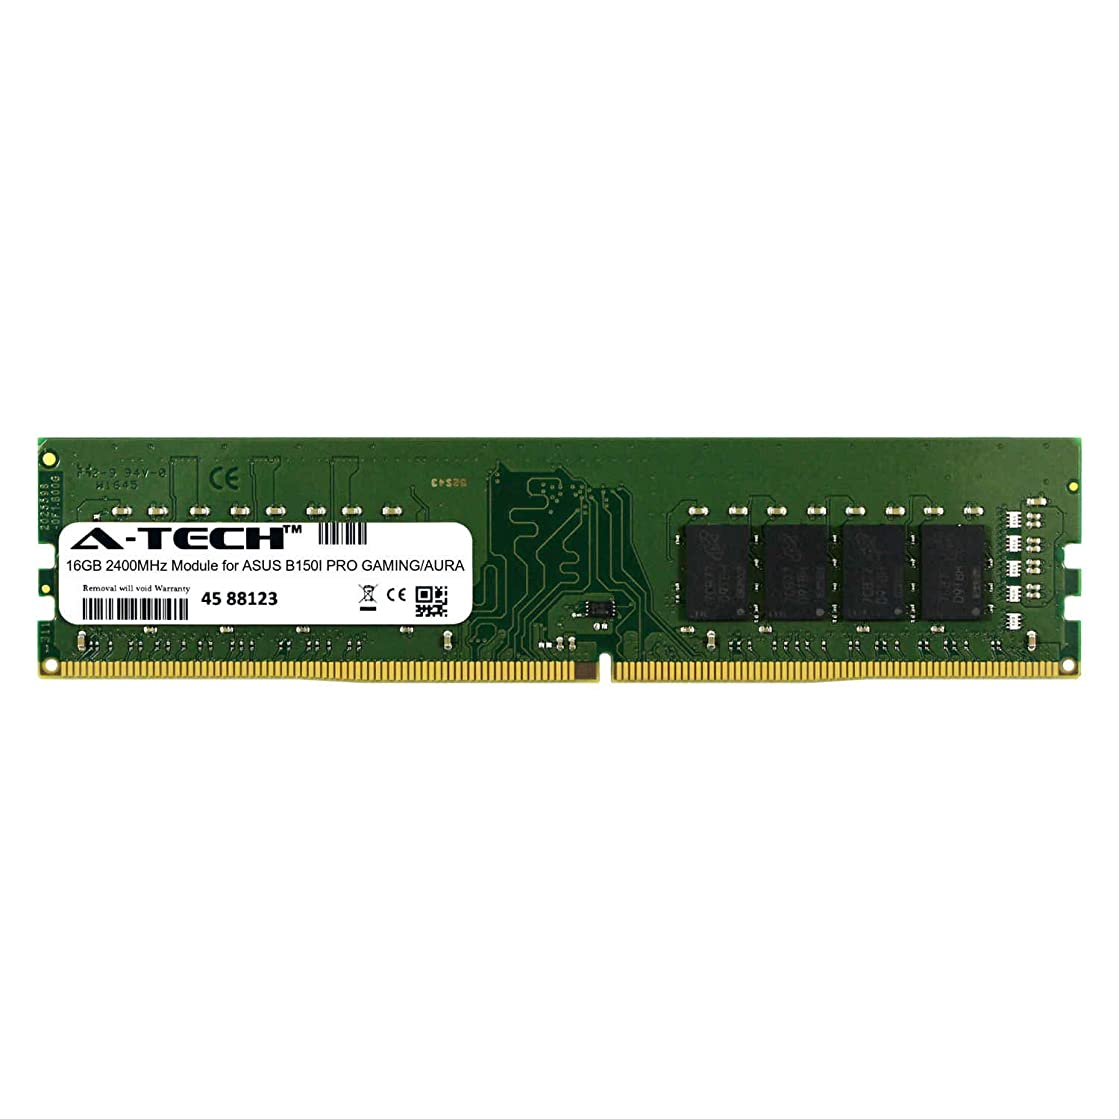 A-Tech 16GB Module for ASUS B150I PRO Gaming/Aura Desktop & Workstation Motherboard Compatible DDR4 2400Mhz Memory Ram (ATMS394745A25822X1)